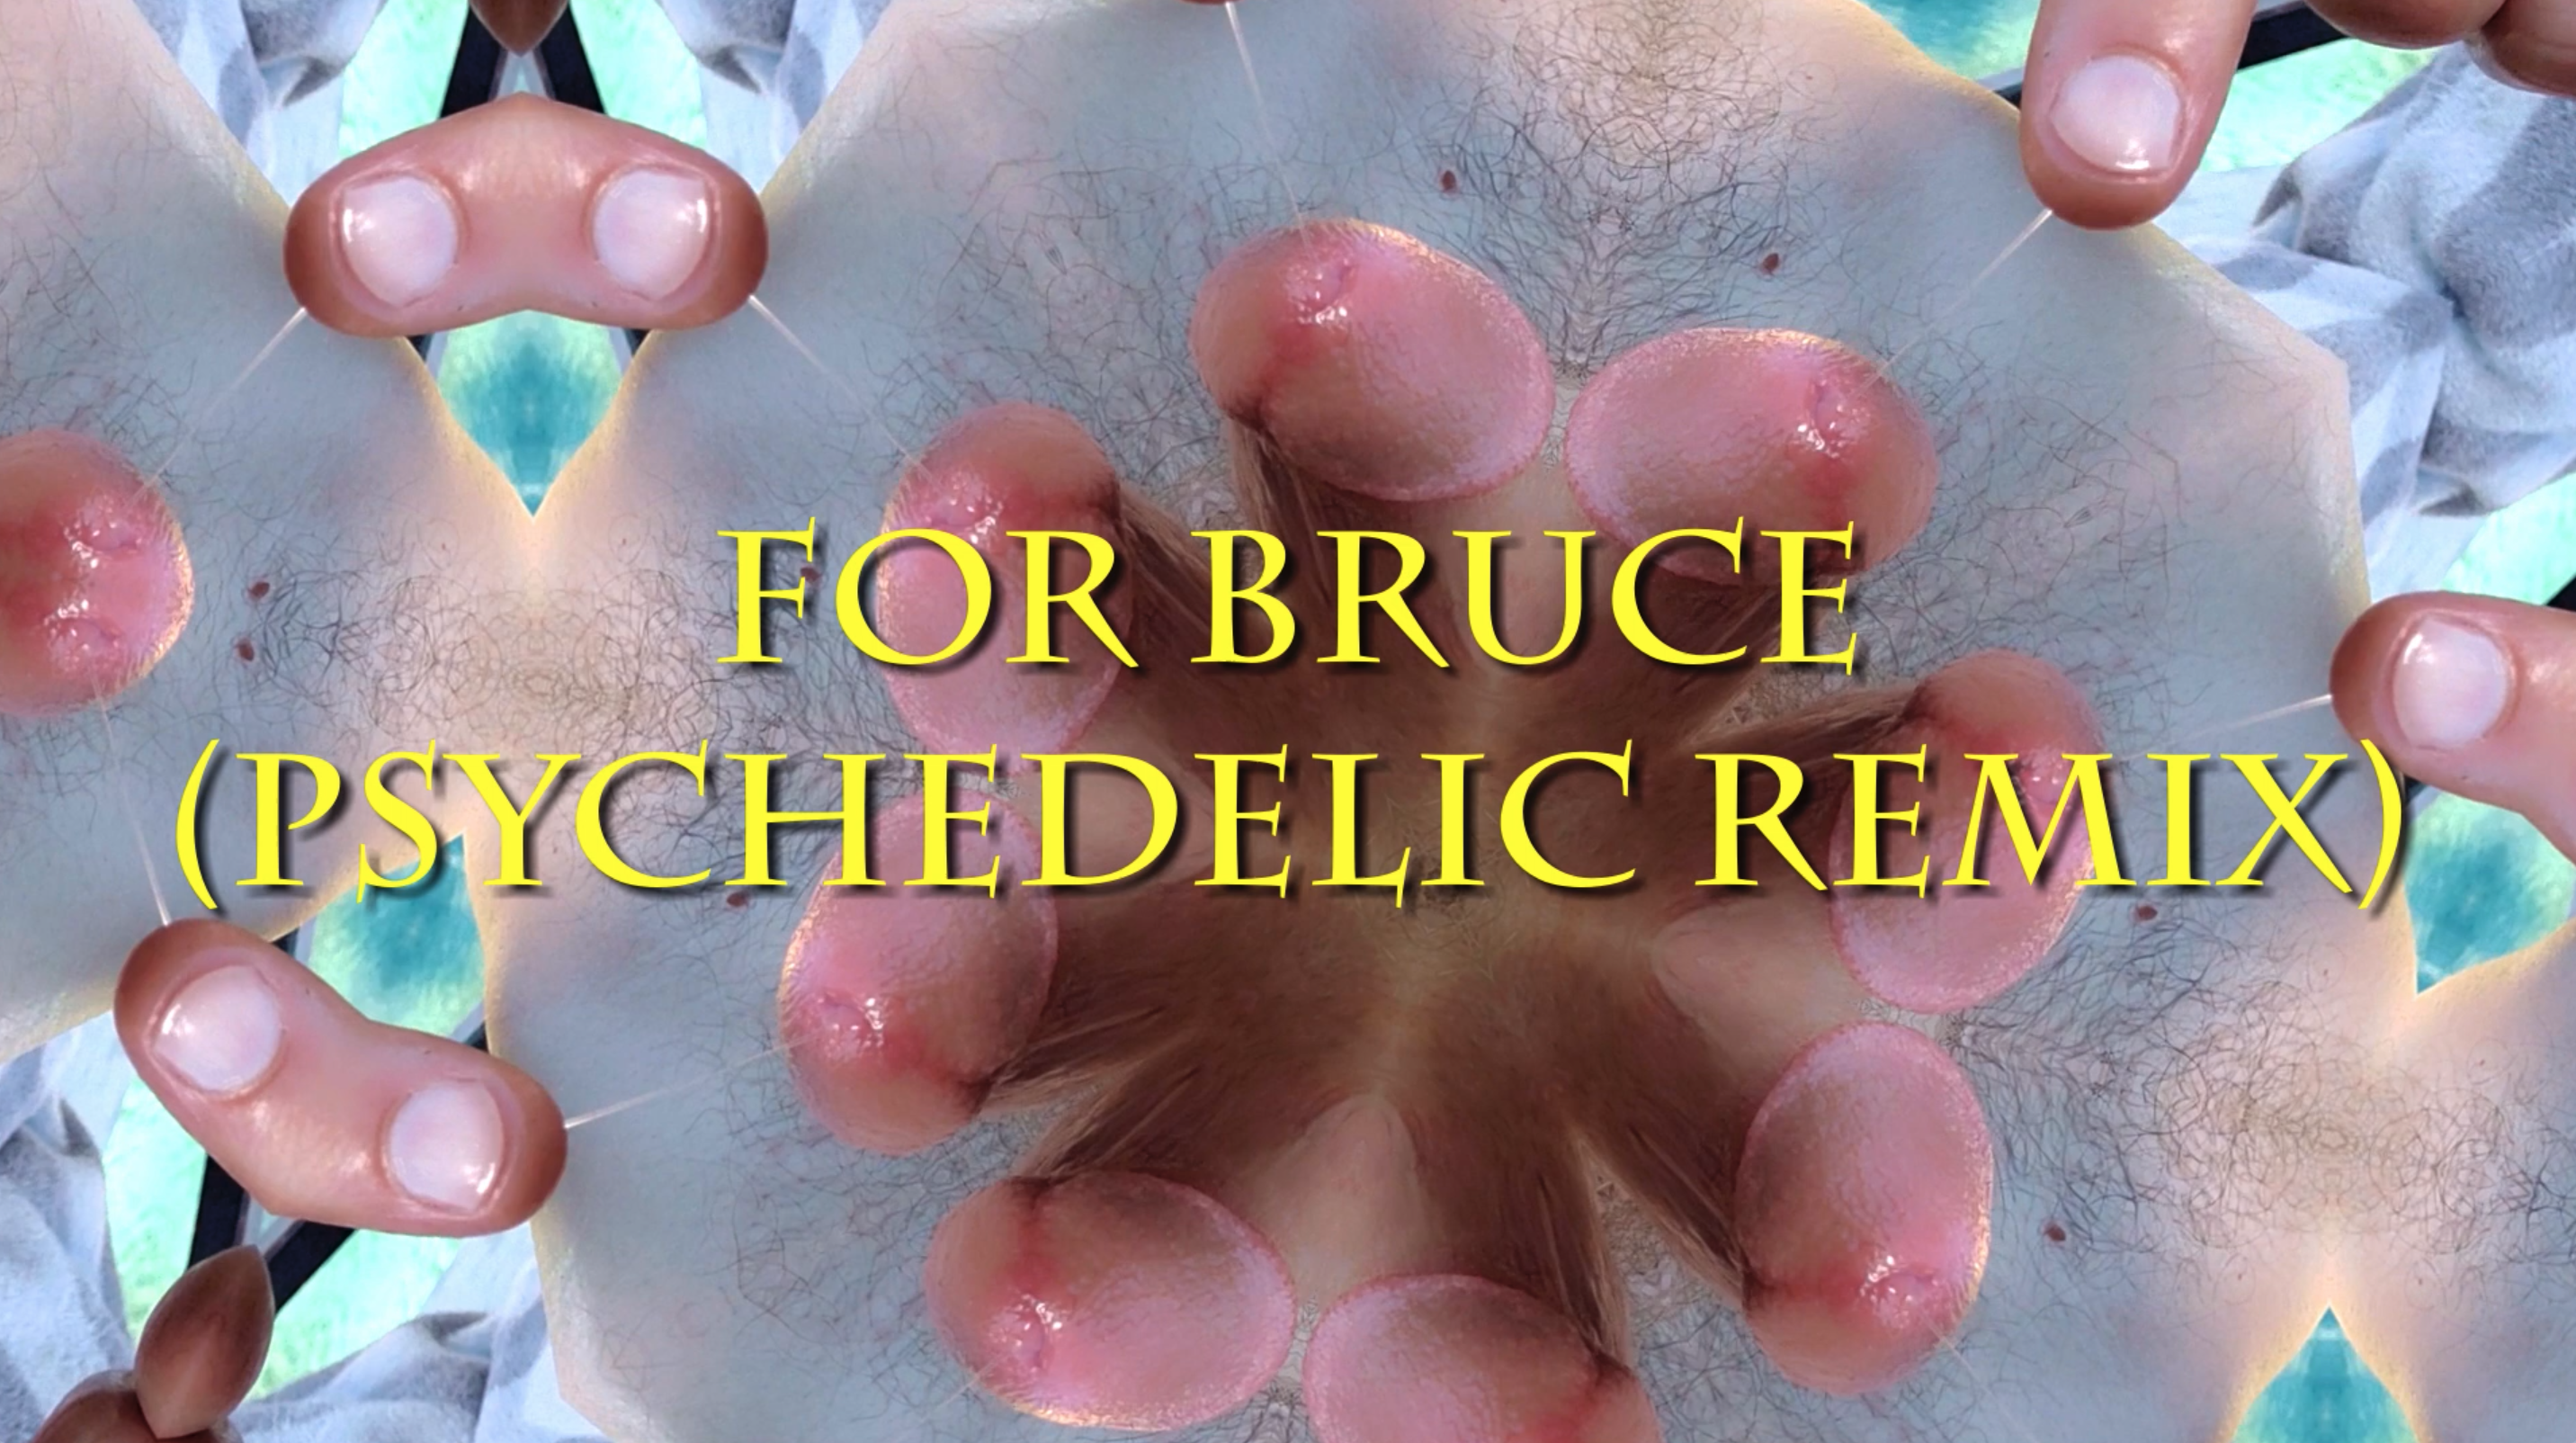 For Bruce (Psychedelic Remix)